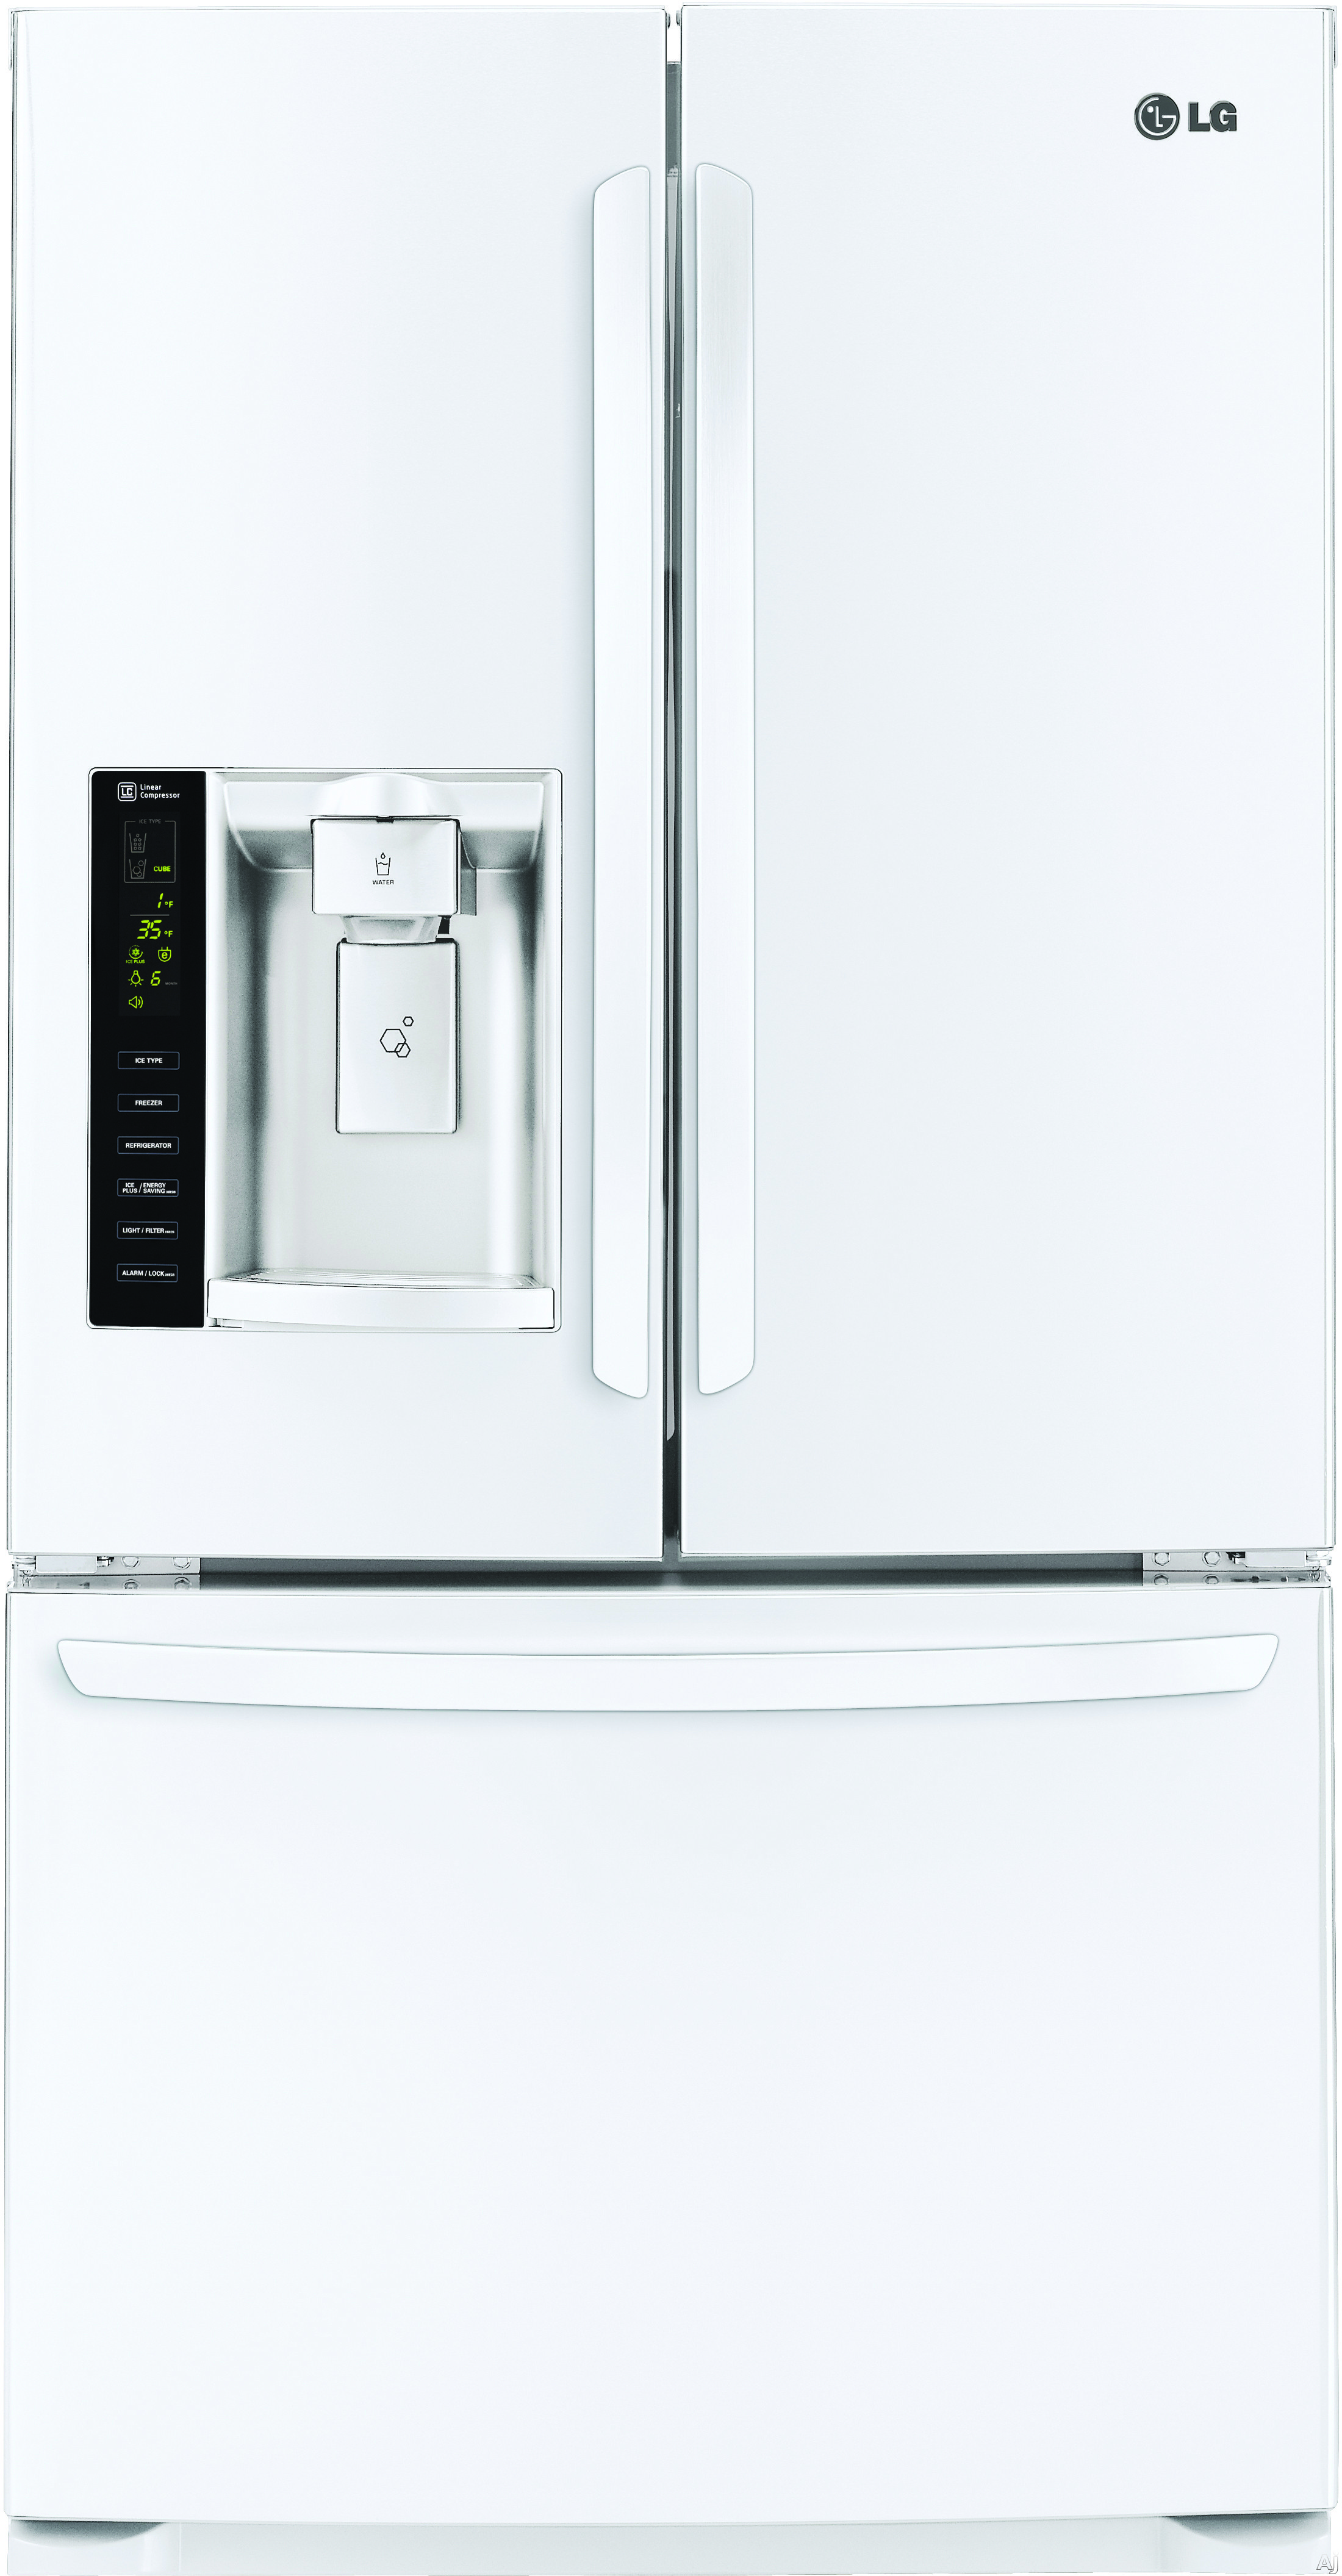 """LG LFX25974SW 36 Inch French Door Refrigerator with Linear Compressor, Slim SpacePlusâ""""¢ System, Air and Water Filtration, SpillProtectorâ""""¢ Shelves, Humidity-Controlled Crispers, Gallon Door Storage, ADA Compliant and 24.7 cu. ft Capacity: White LFX2597"""